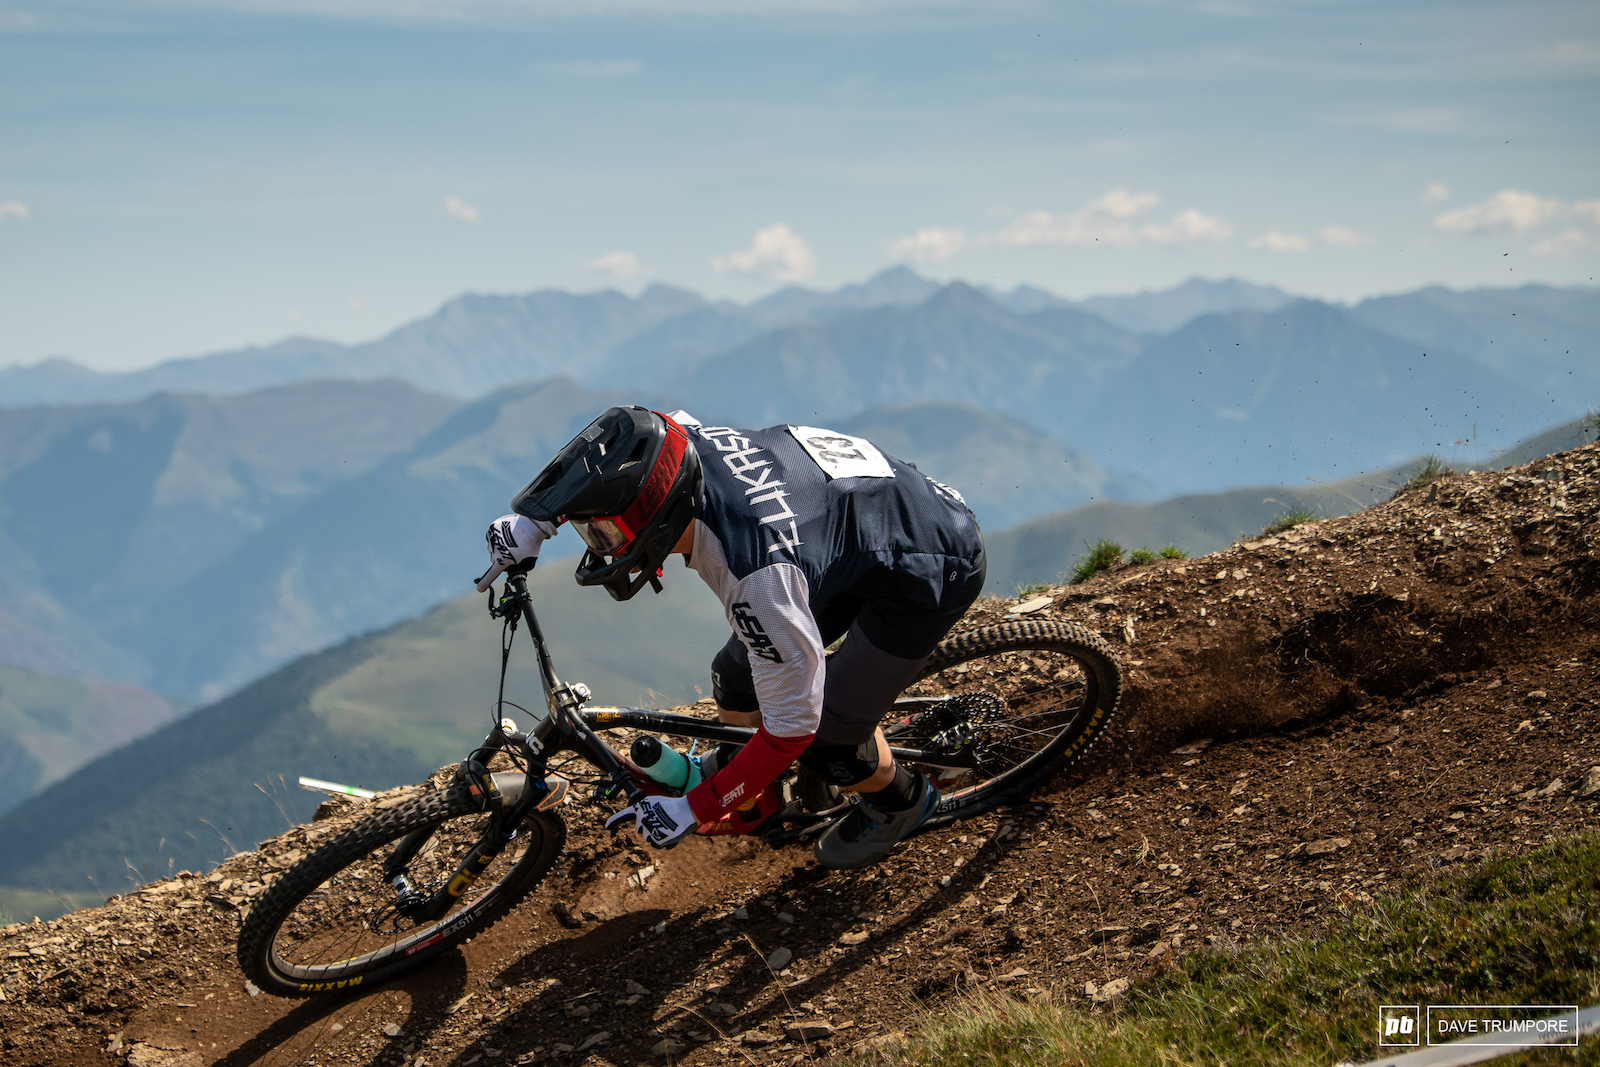 Remember Slawomir Lukasik s name because after his 7th place finish today we image we will be seeing much more of him